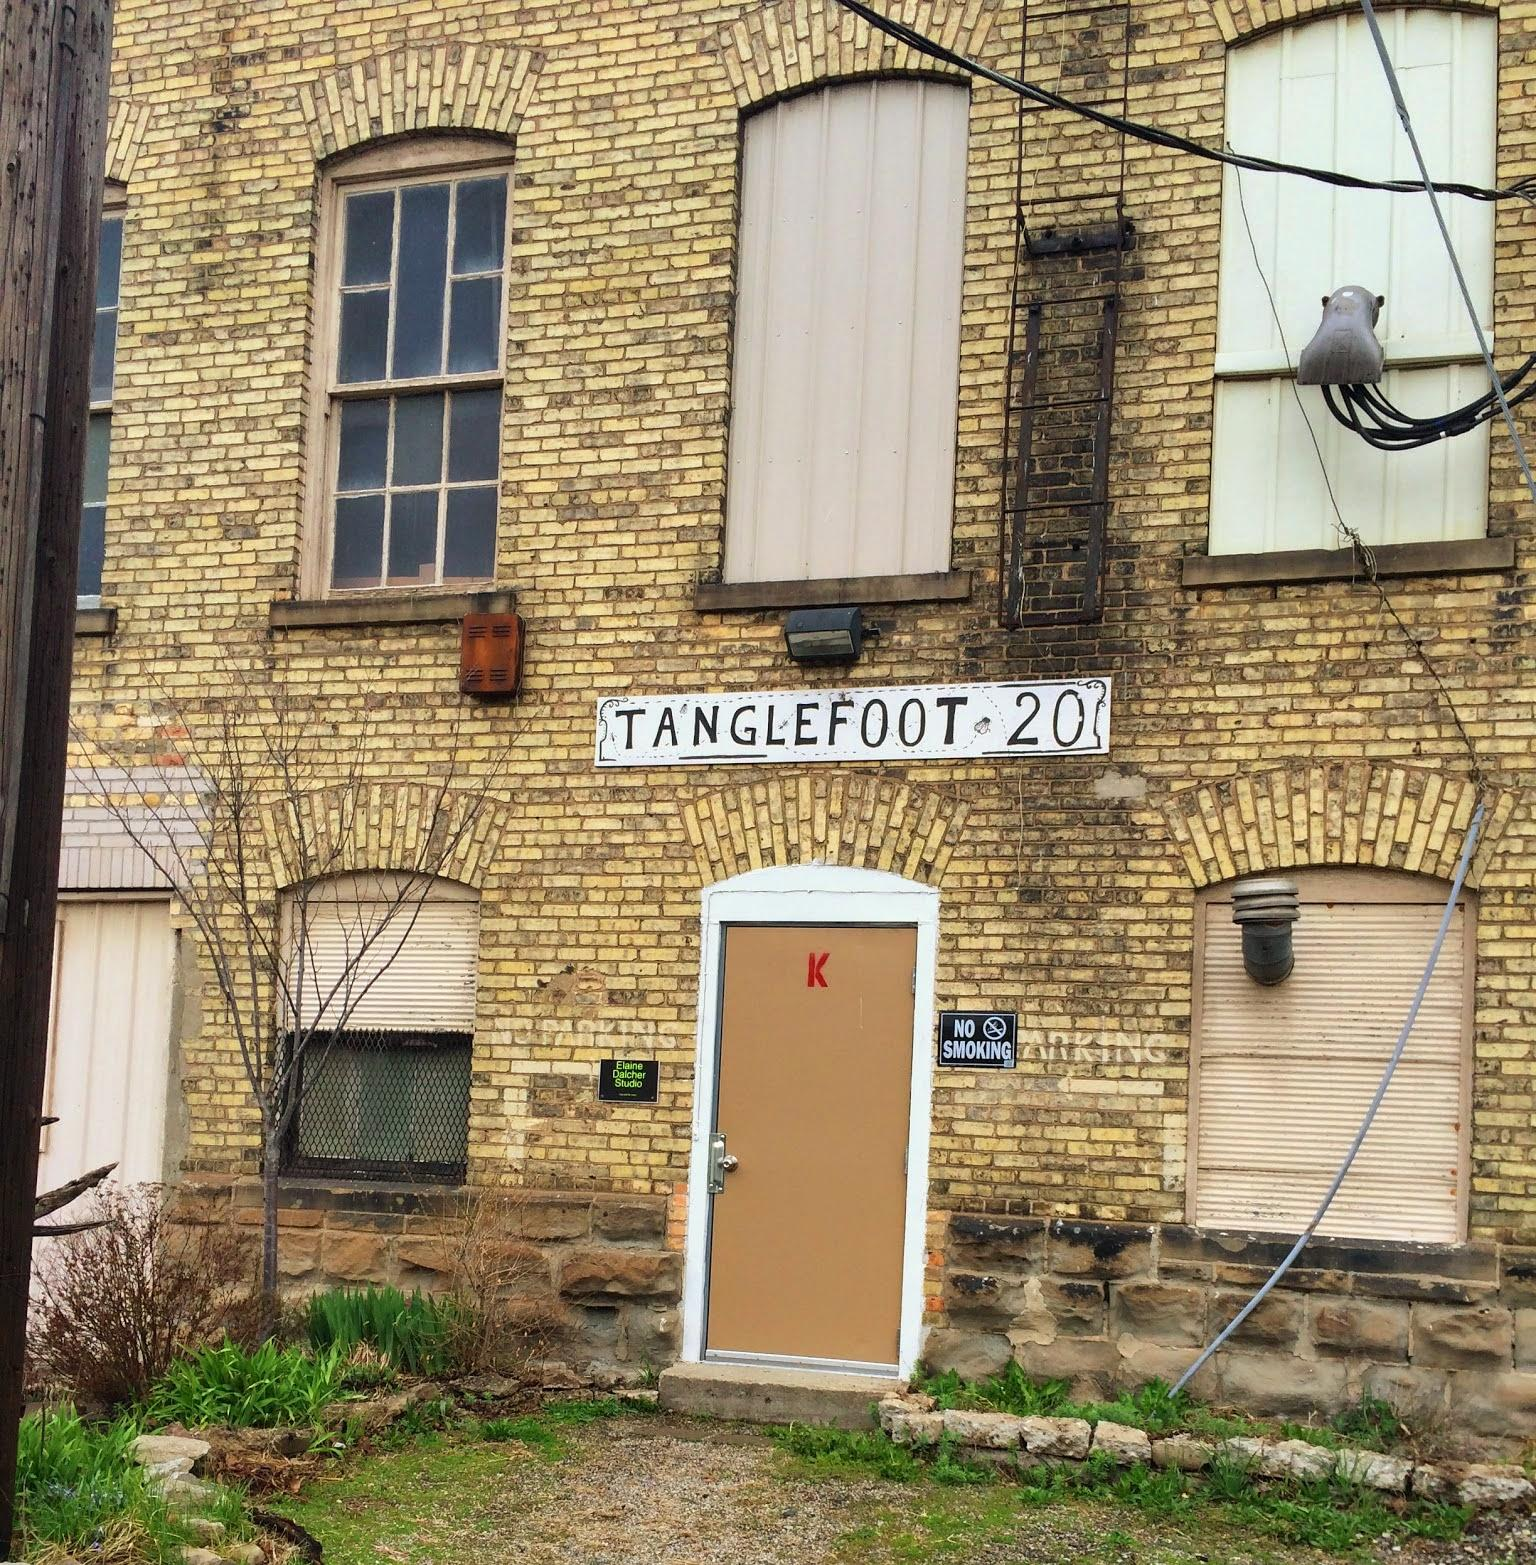 Grand Rapids Tanglefoot Building Is Where Both Flypaper And Artists